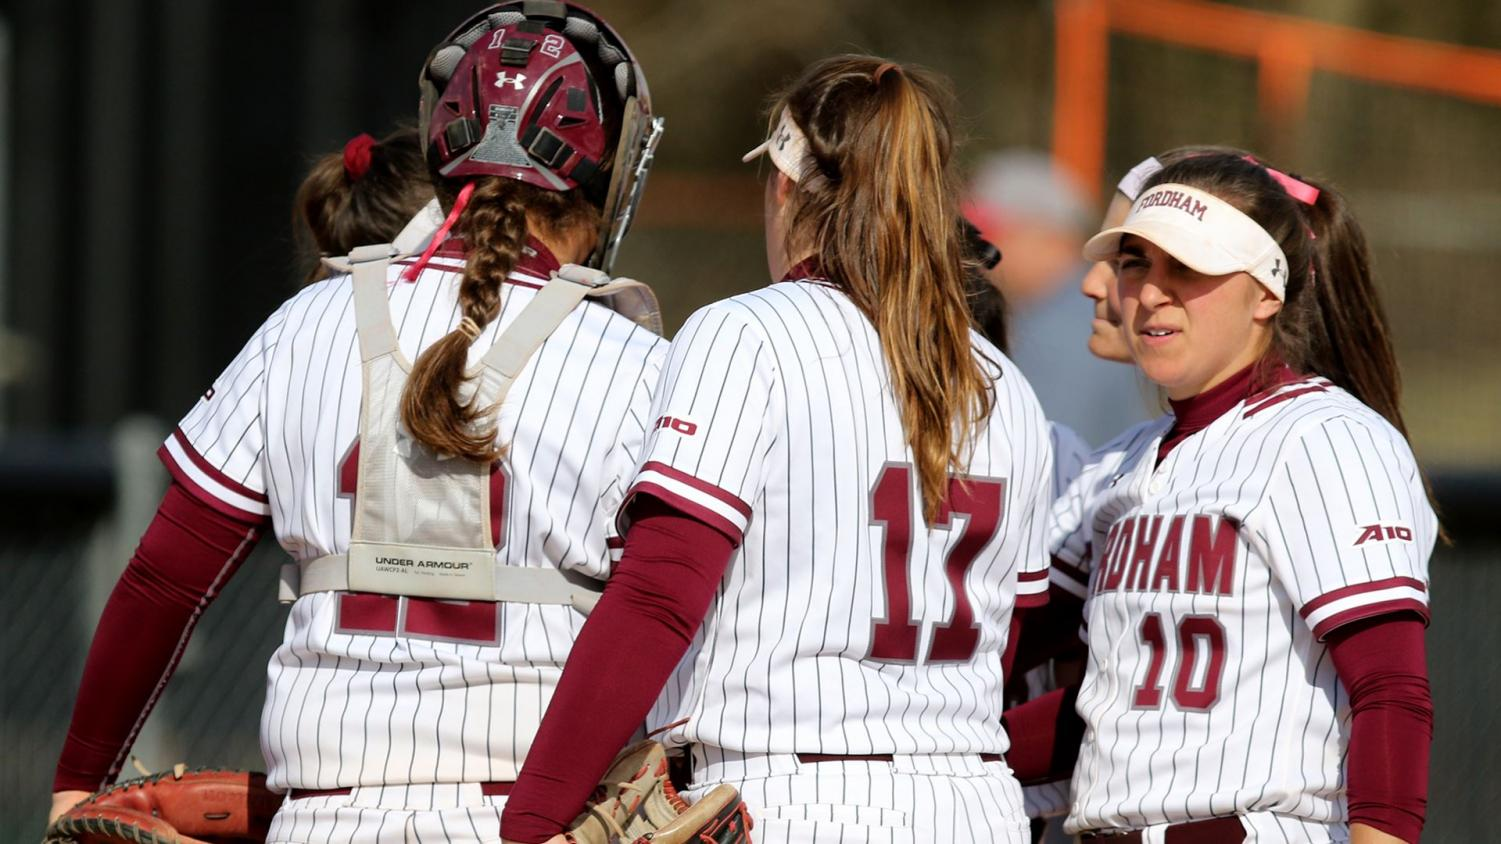 Fordham Softball took two out of three from George Mason but couldn't secure a sweep. (Courtesy of Fordham Athletics)